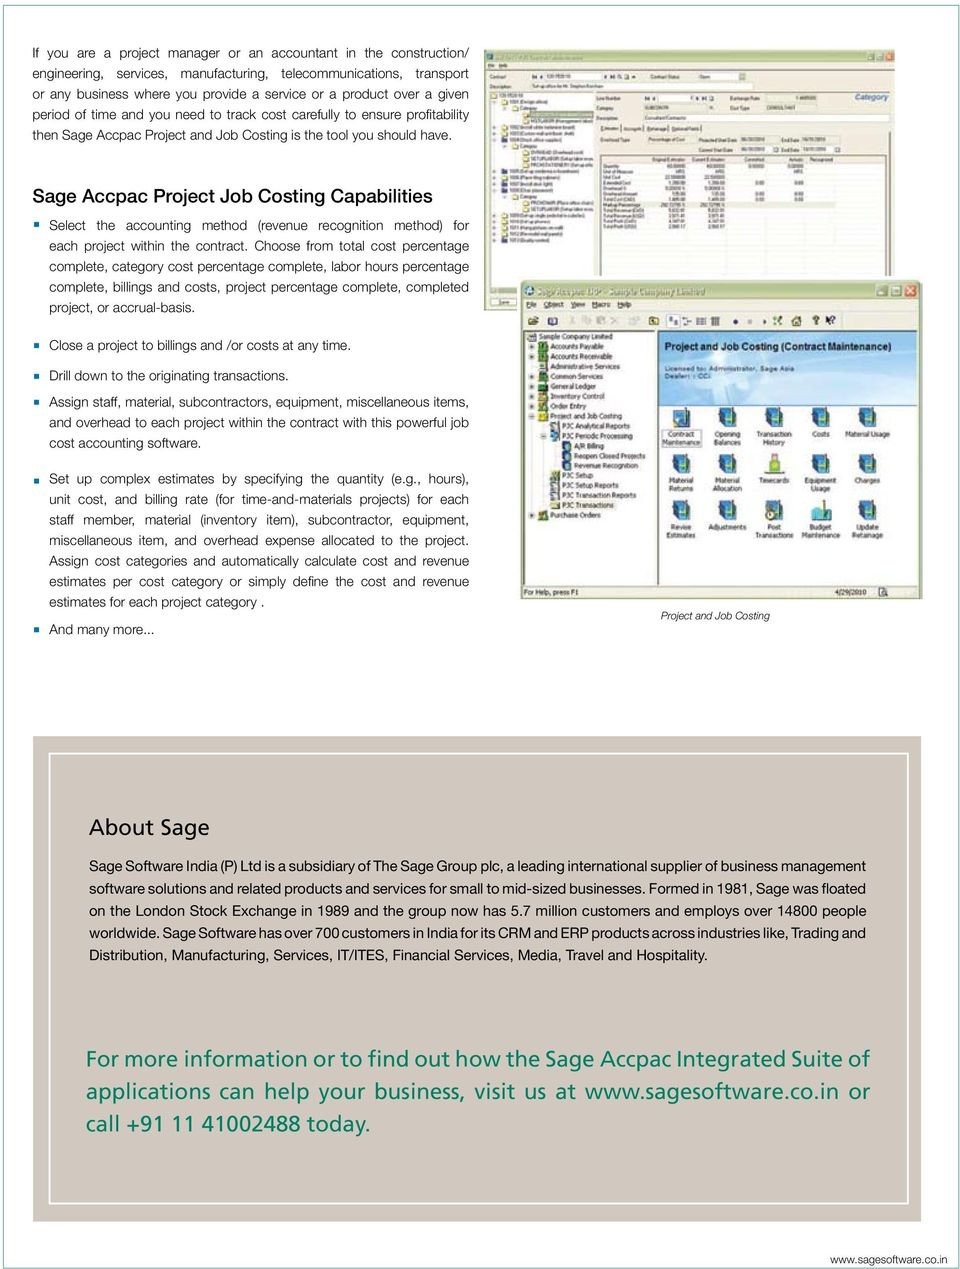 Sage Accpac Project Job Costing Capabilities Select the accounting method (revenue recognition method) for each project within the contract.